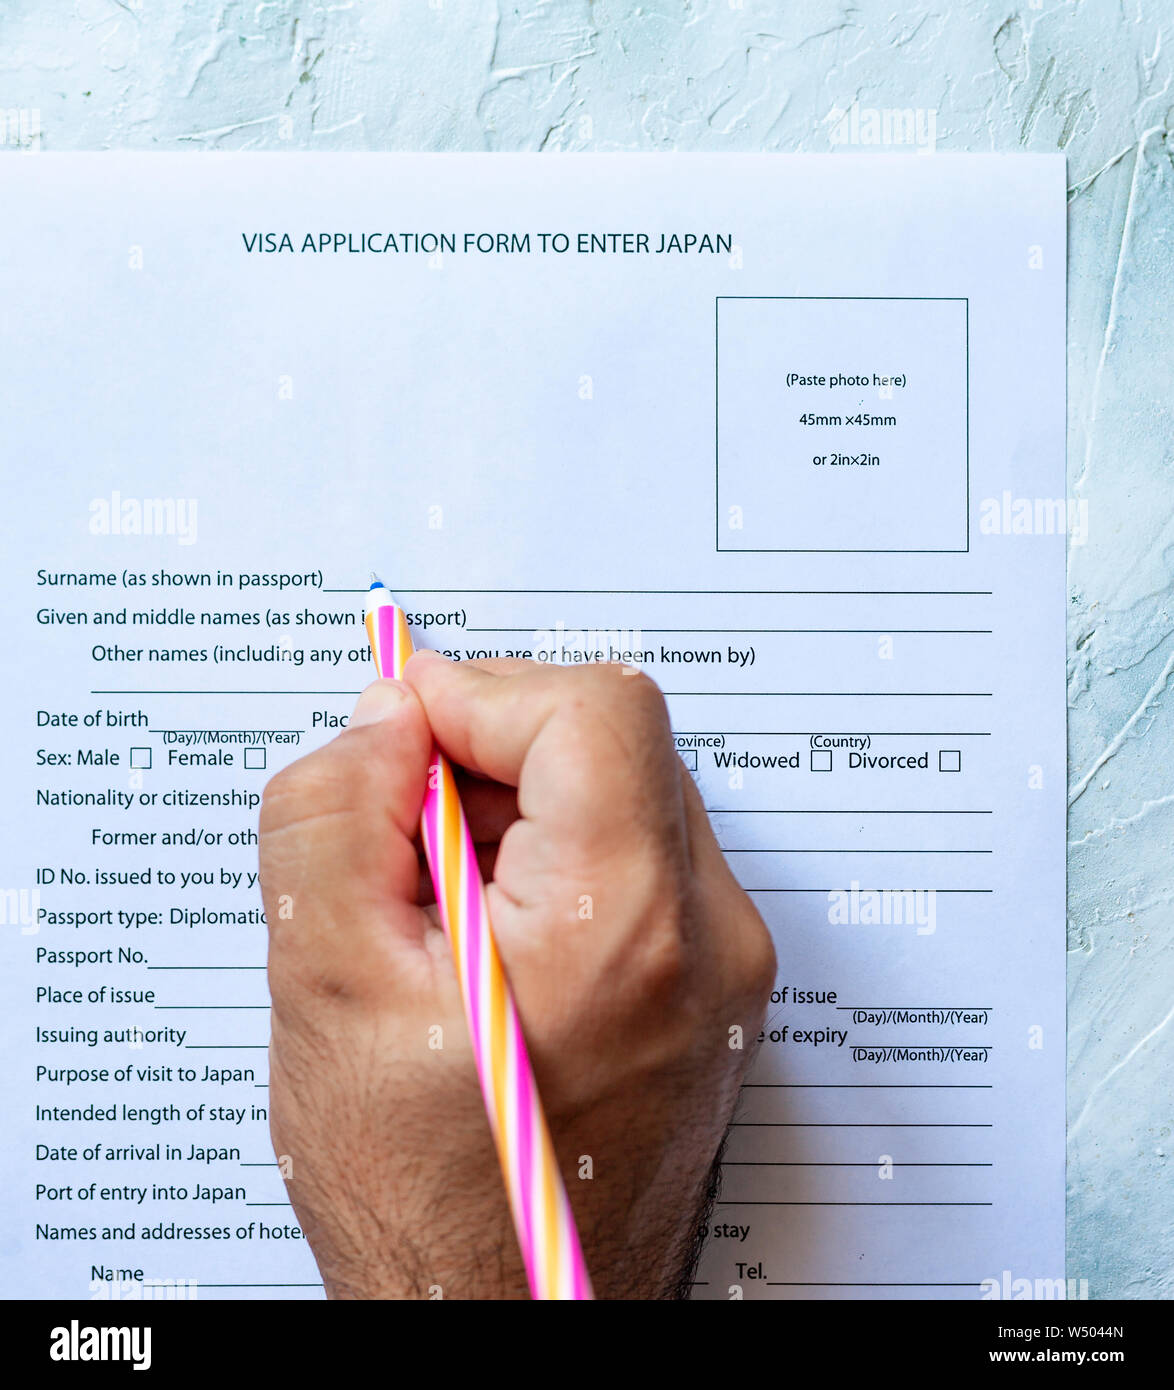 The Person Filling The Visa Application Form To Enter Japan Stock Photo Alamy